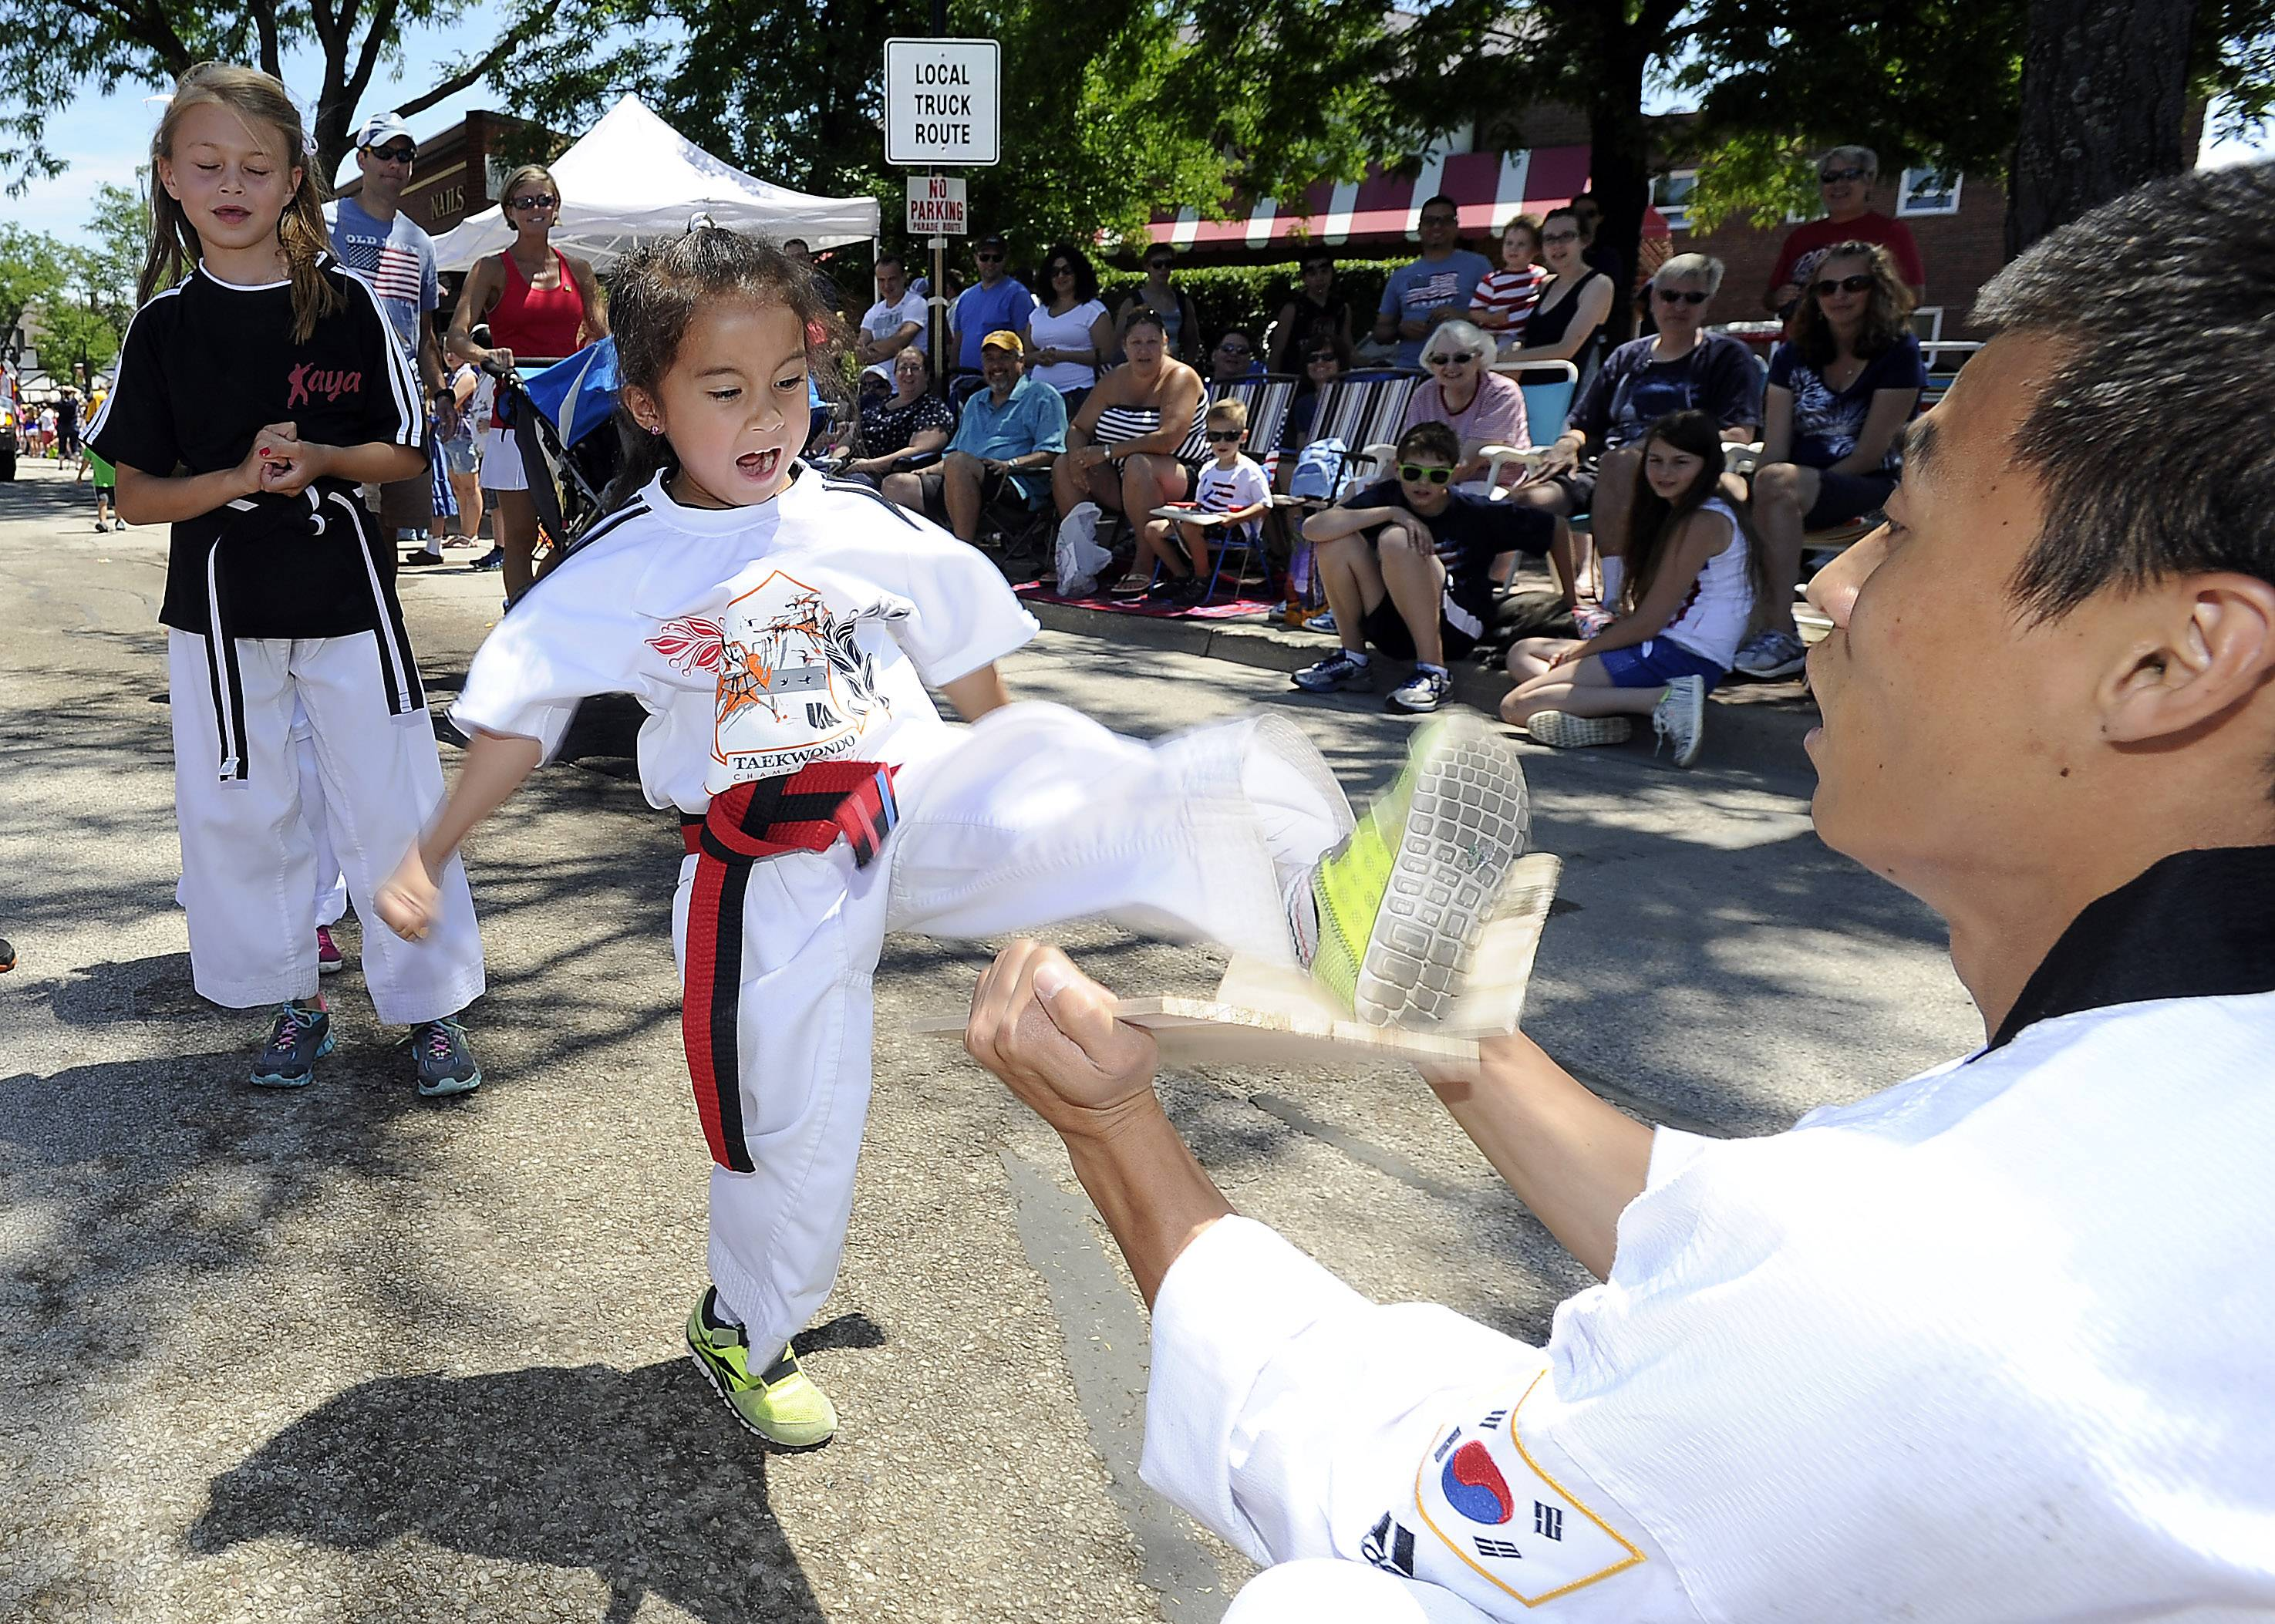 Caylle Del Boccio, 5, of Mount Prospect breaks boards for the Mount Prospect parade audience as part of her training from Kaya Martial Arts of Arlington Heights.